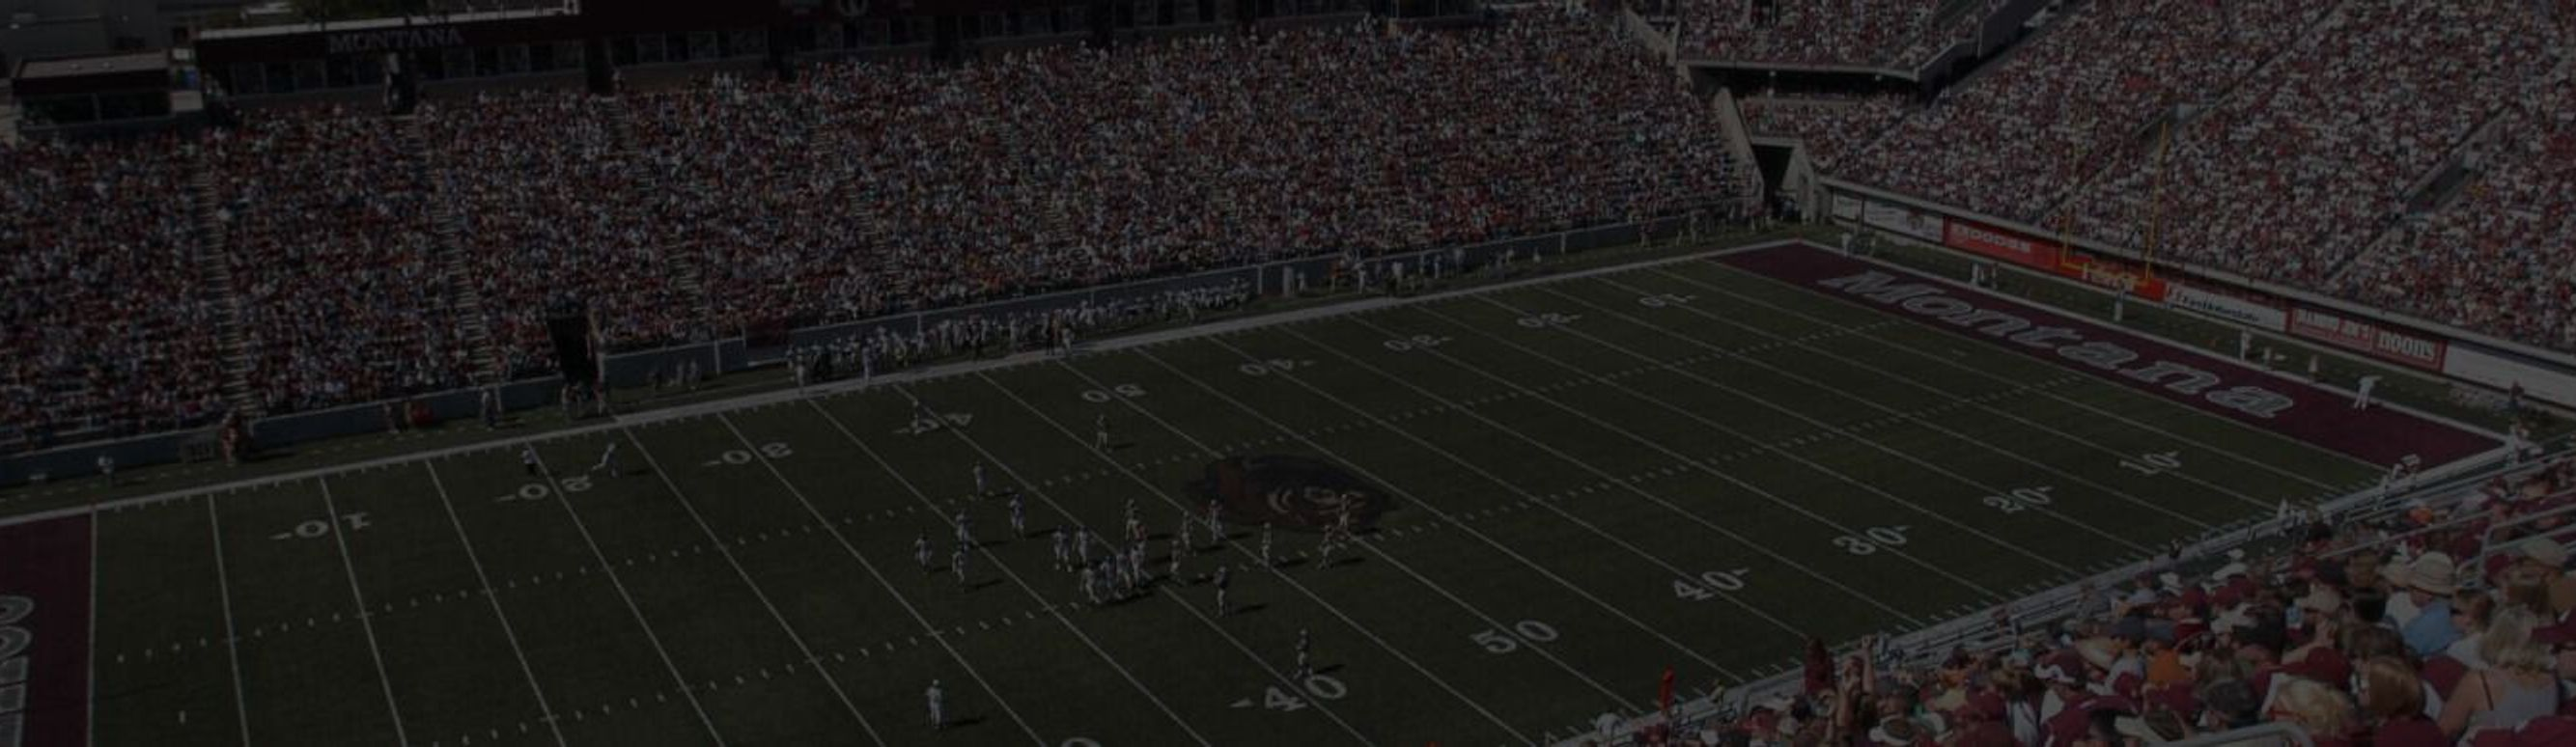 Washington-Grizzly Stadium during a Montana Grizzlies game